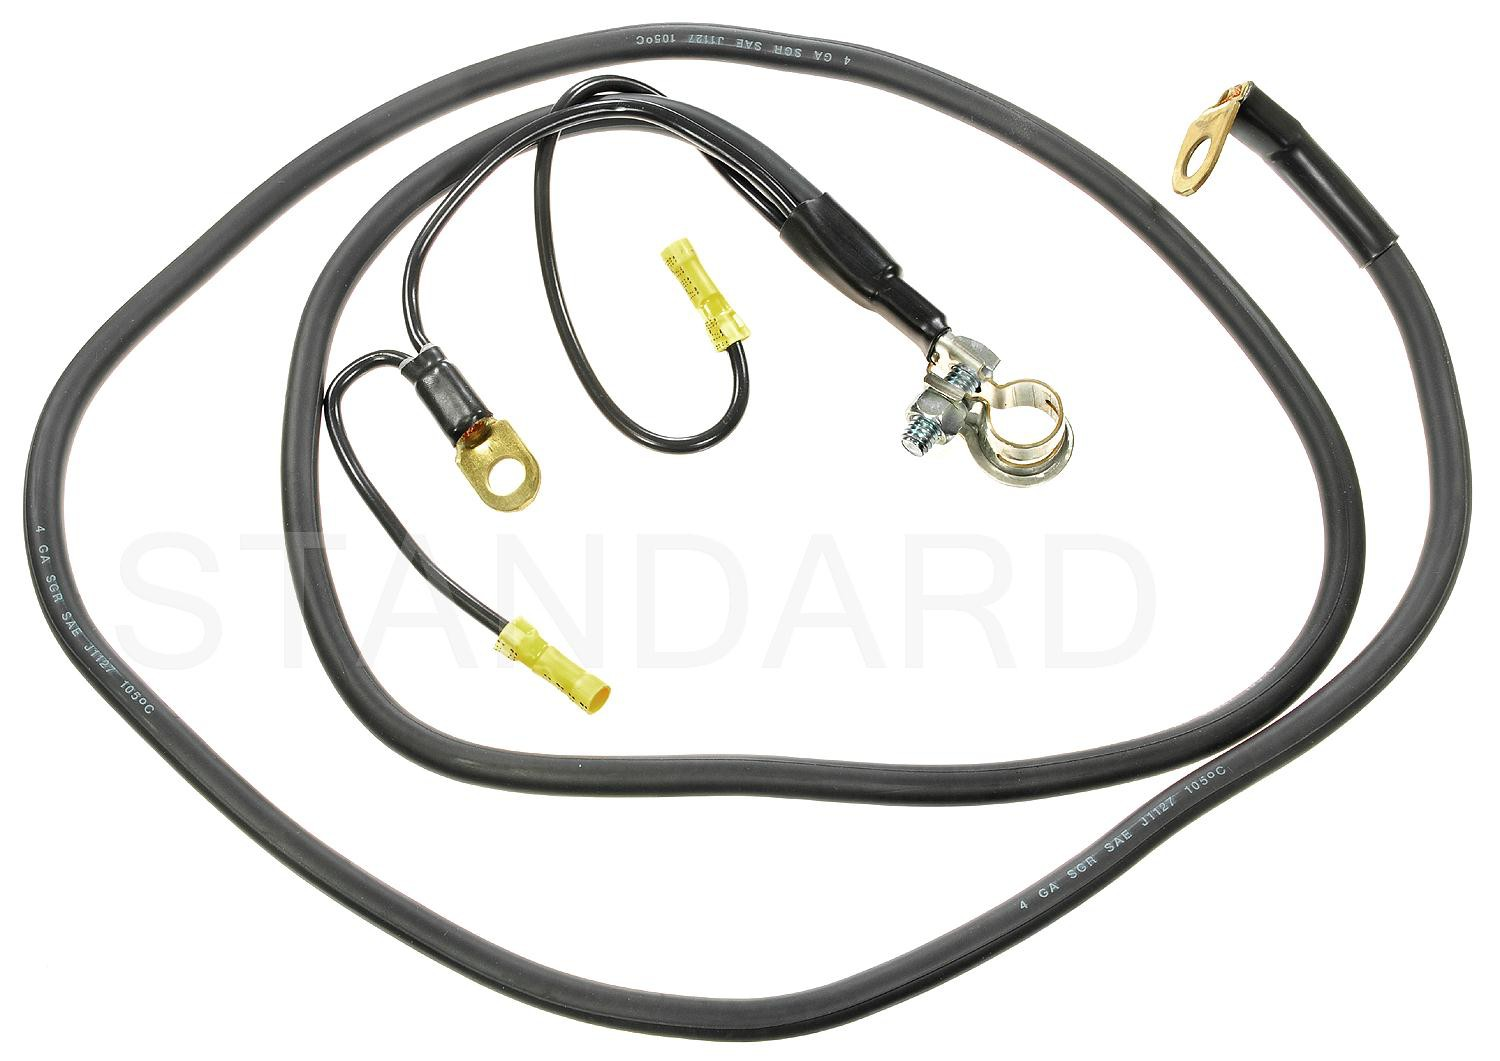 Battery Cable Standard A62 4tc Fits 96 98 Ford Mustang 4 6l V8